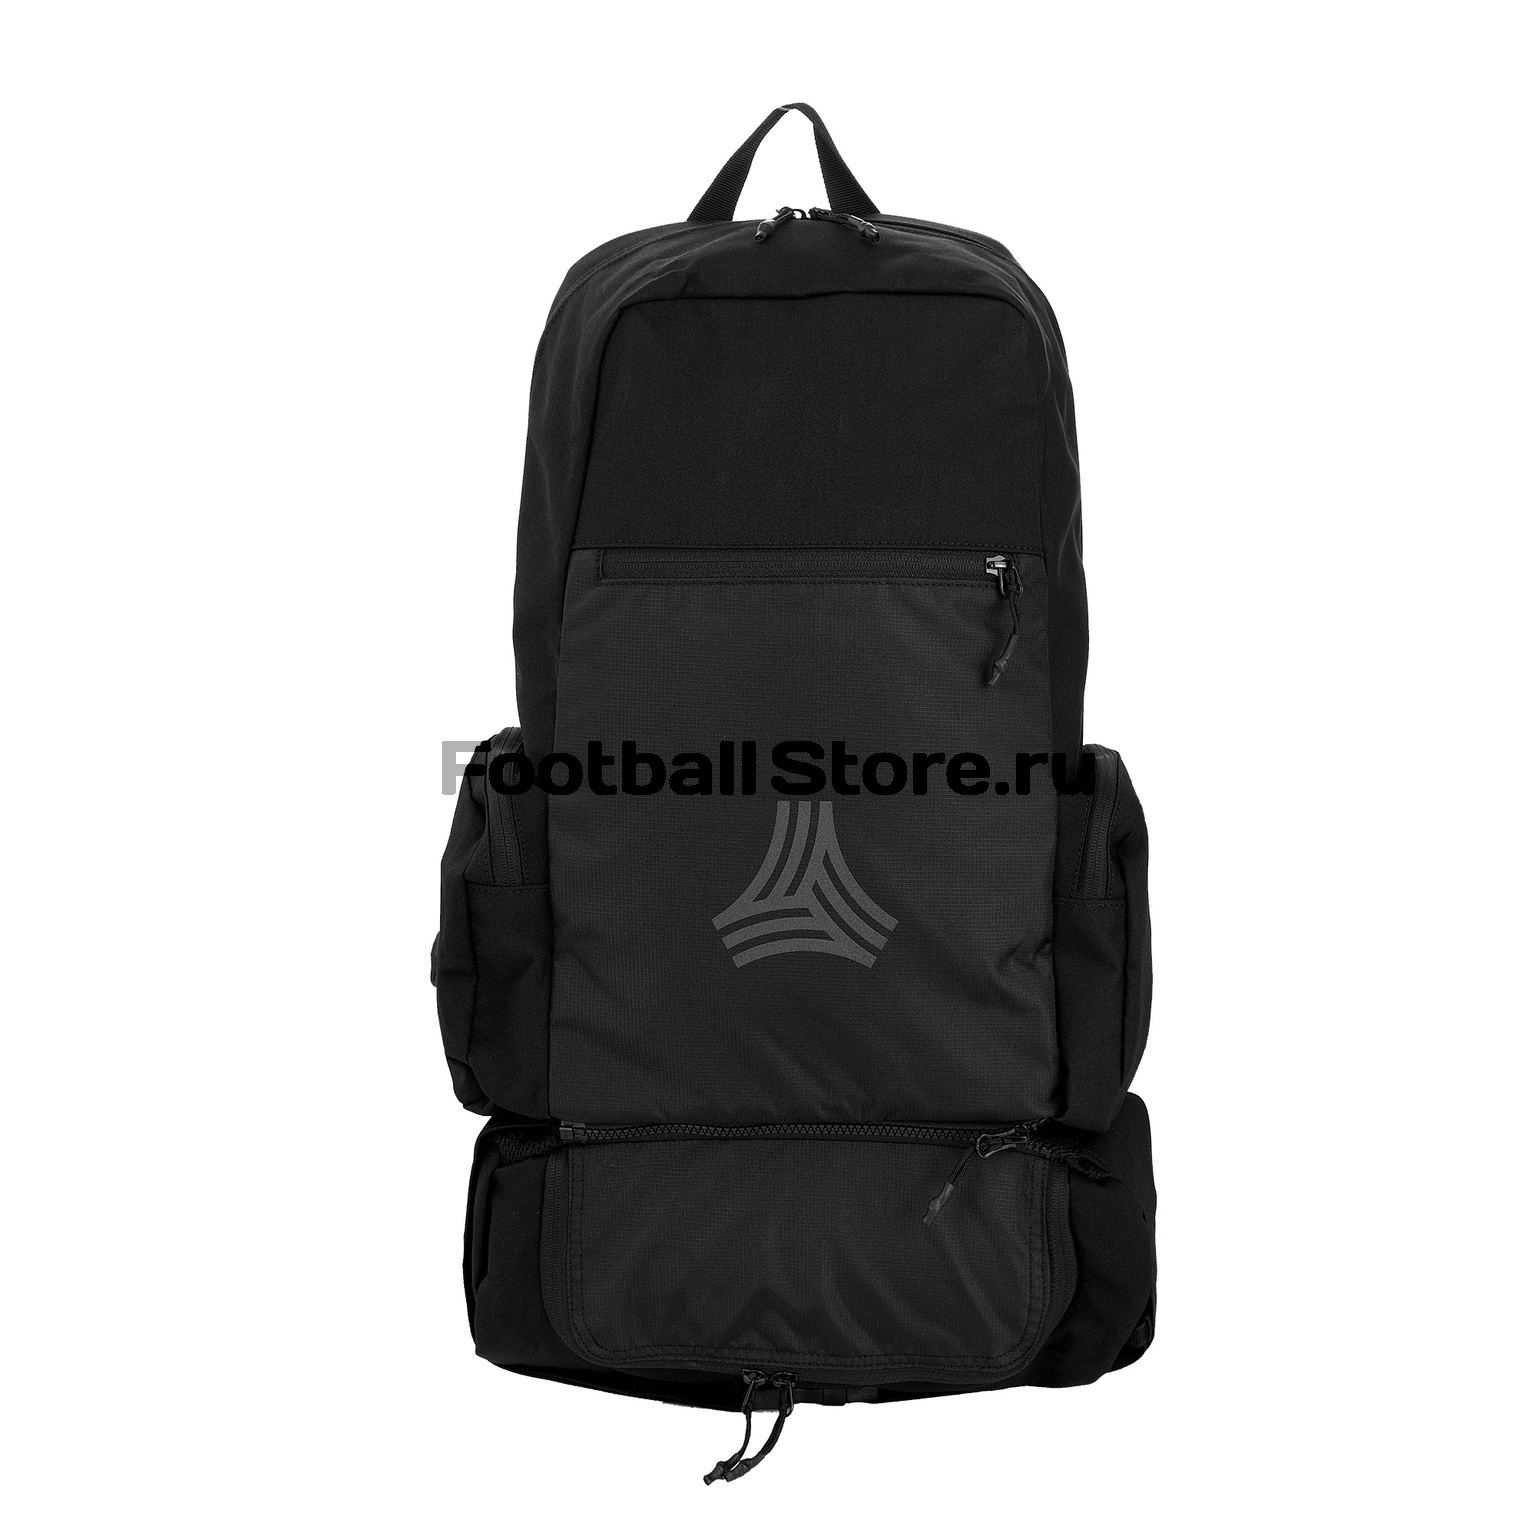 Рюкзак Adidas FS Backpack DY1977